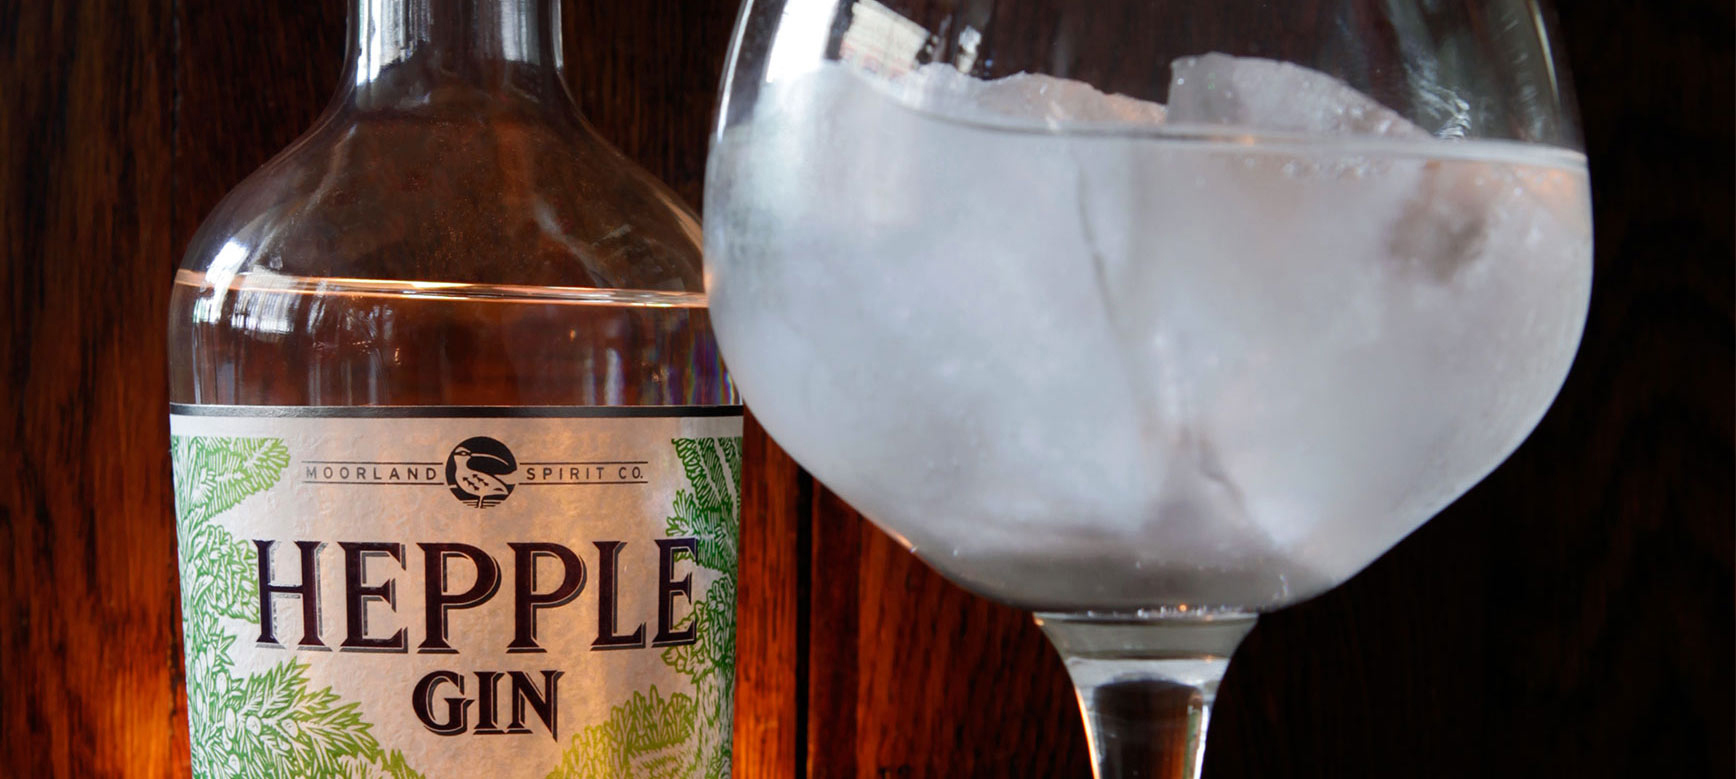 Gin review: Hepple Gin 45% abv